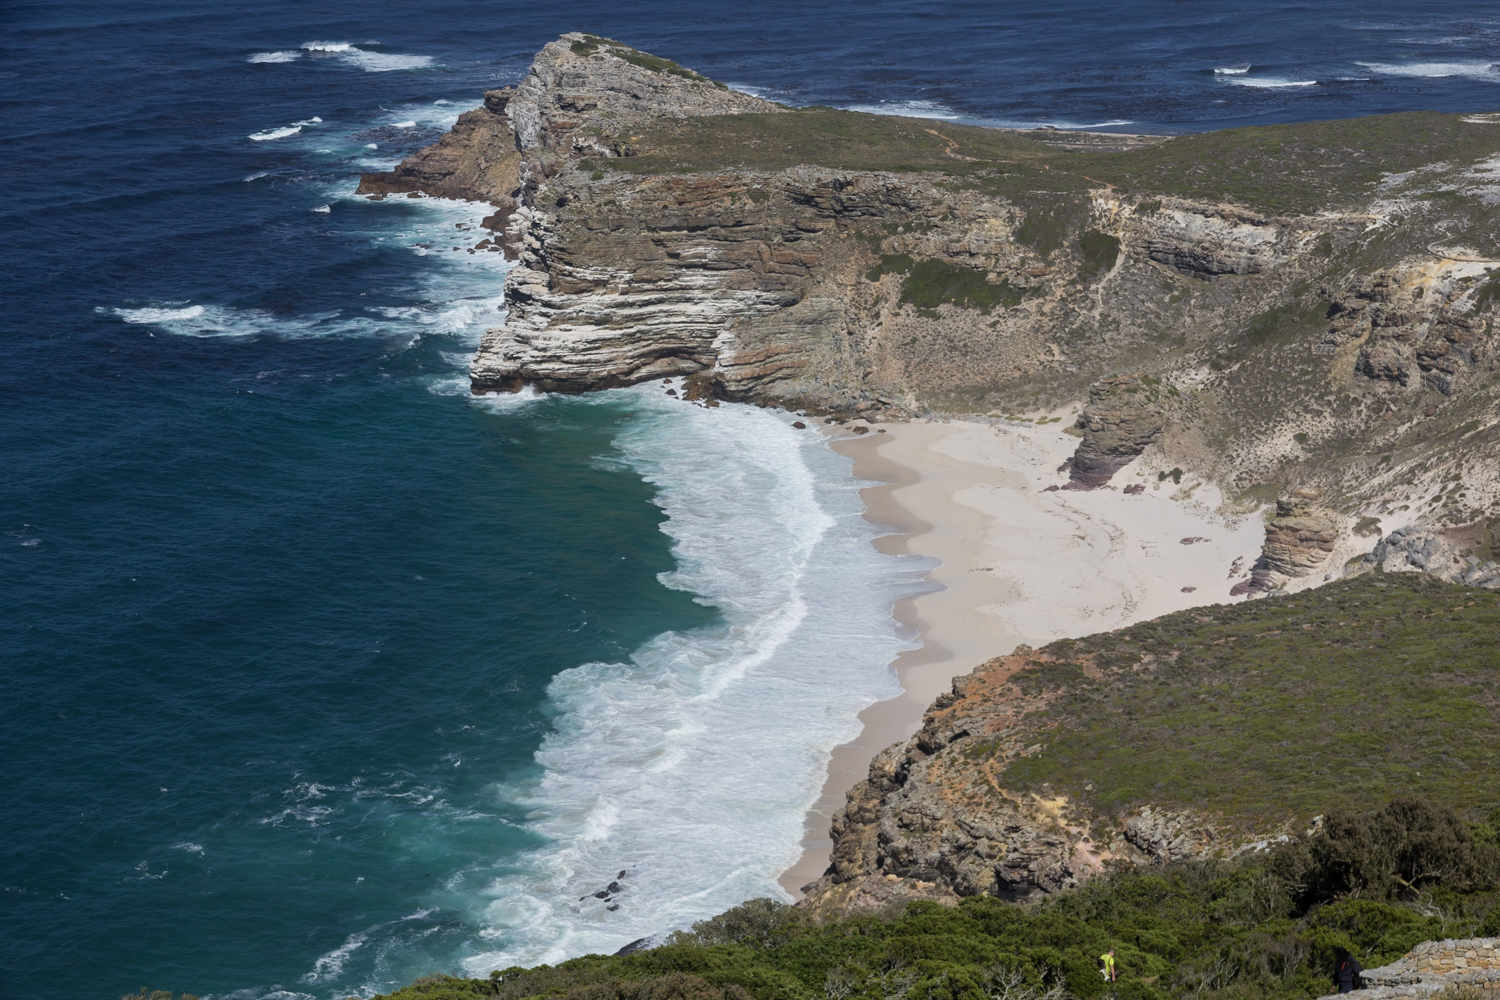 cape point beach from above